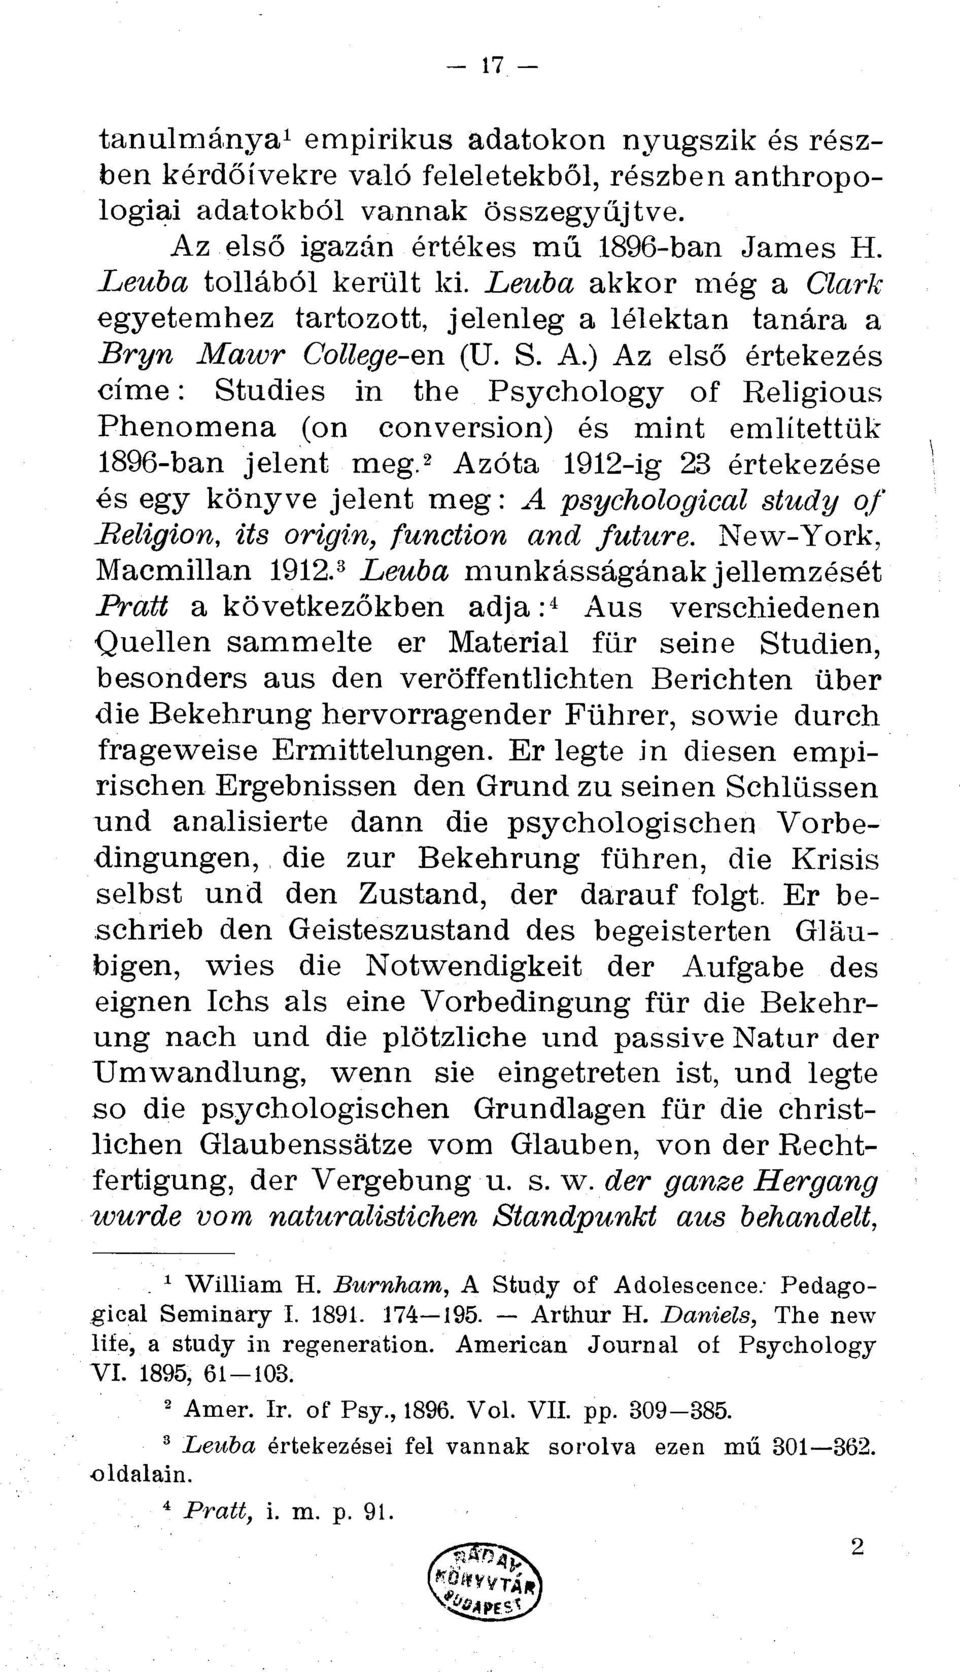 ) Az elso ertekezes time : Studies in the Psychology of Religious Phenomena (on conversion) és mint emlitettak 1896-ban jelent meg.